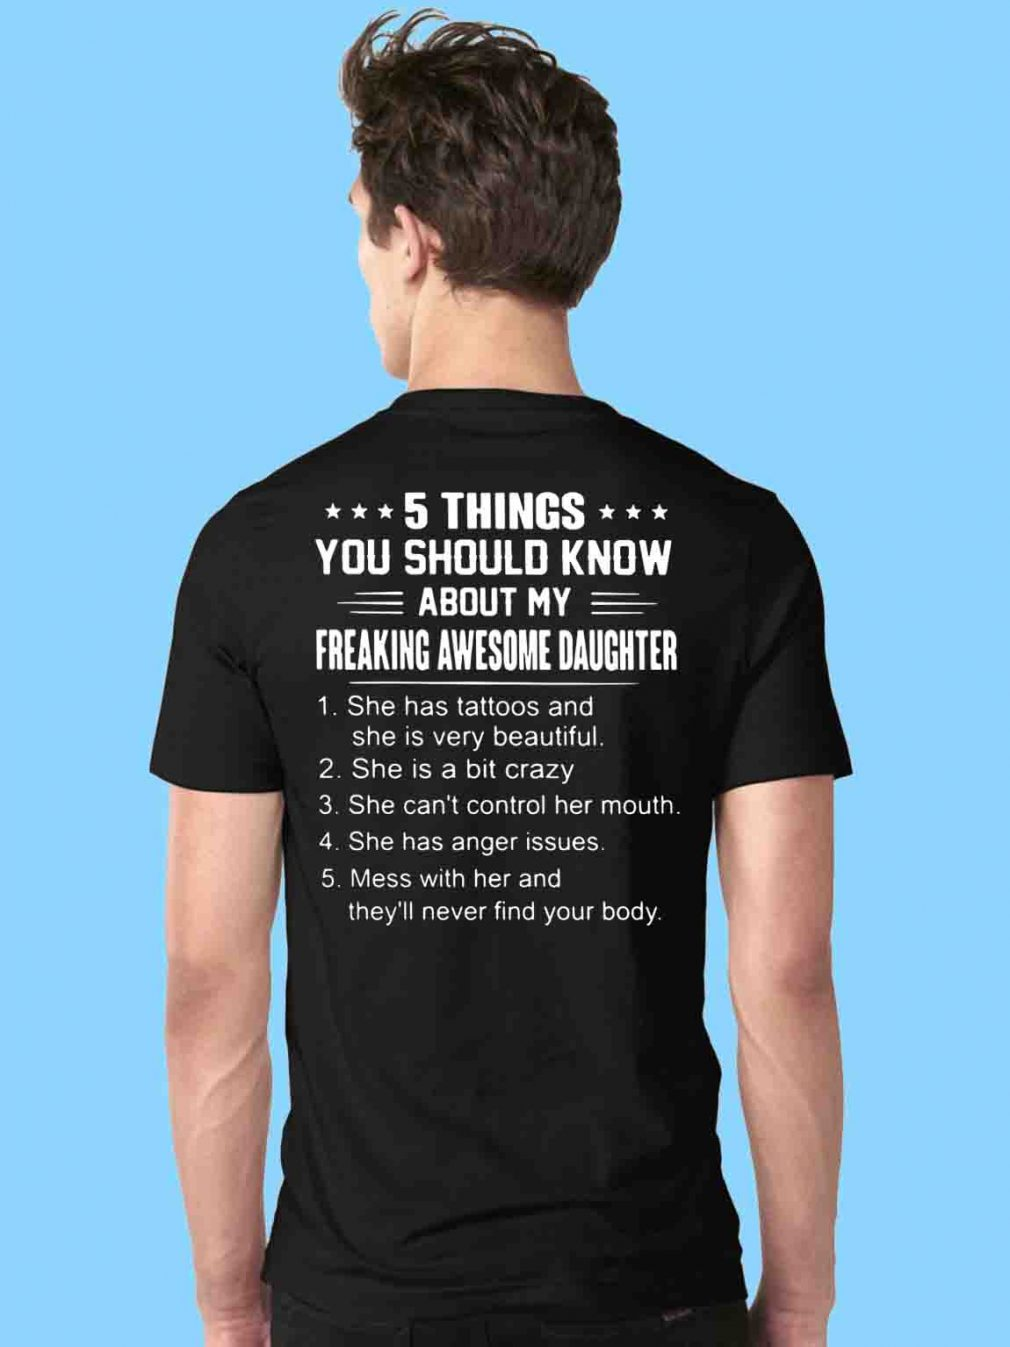 5 things you should know about my freaking awesome daughter shirt